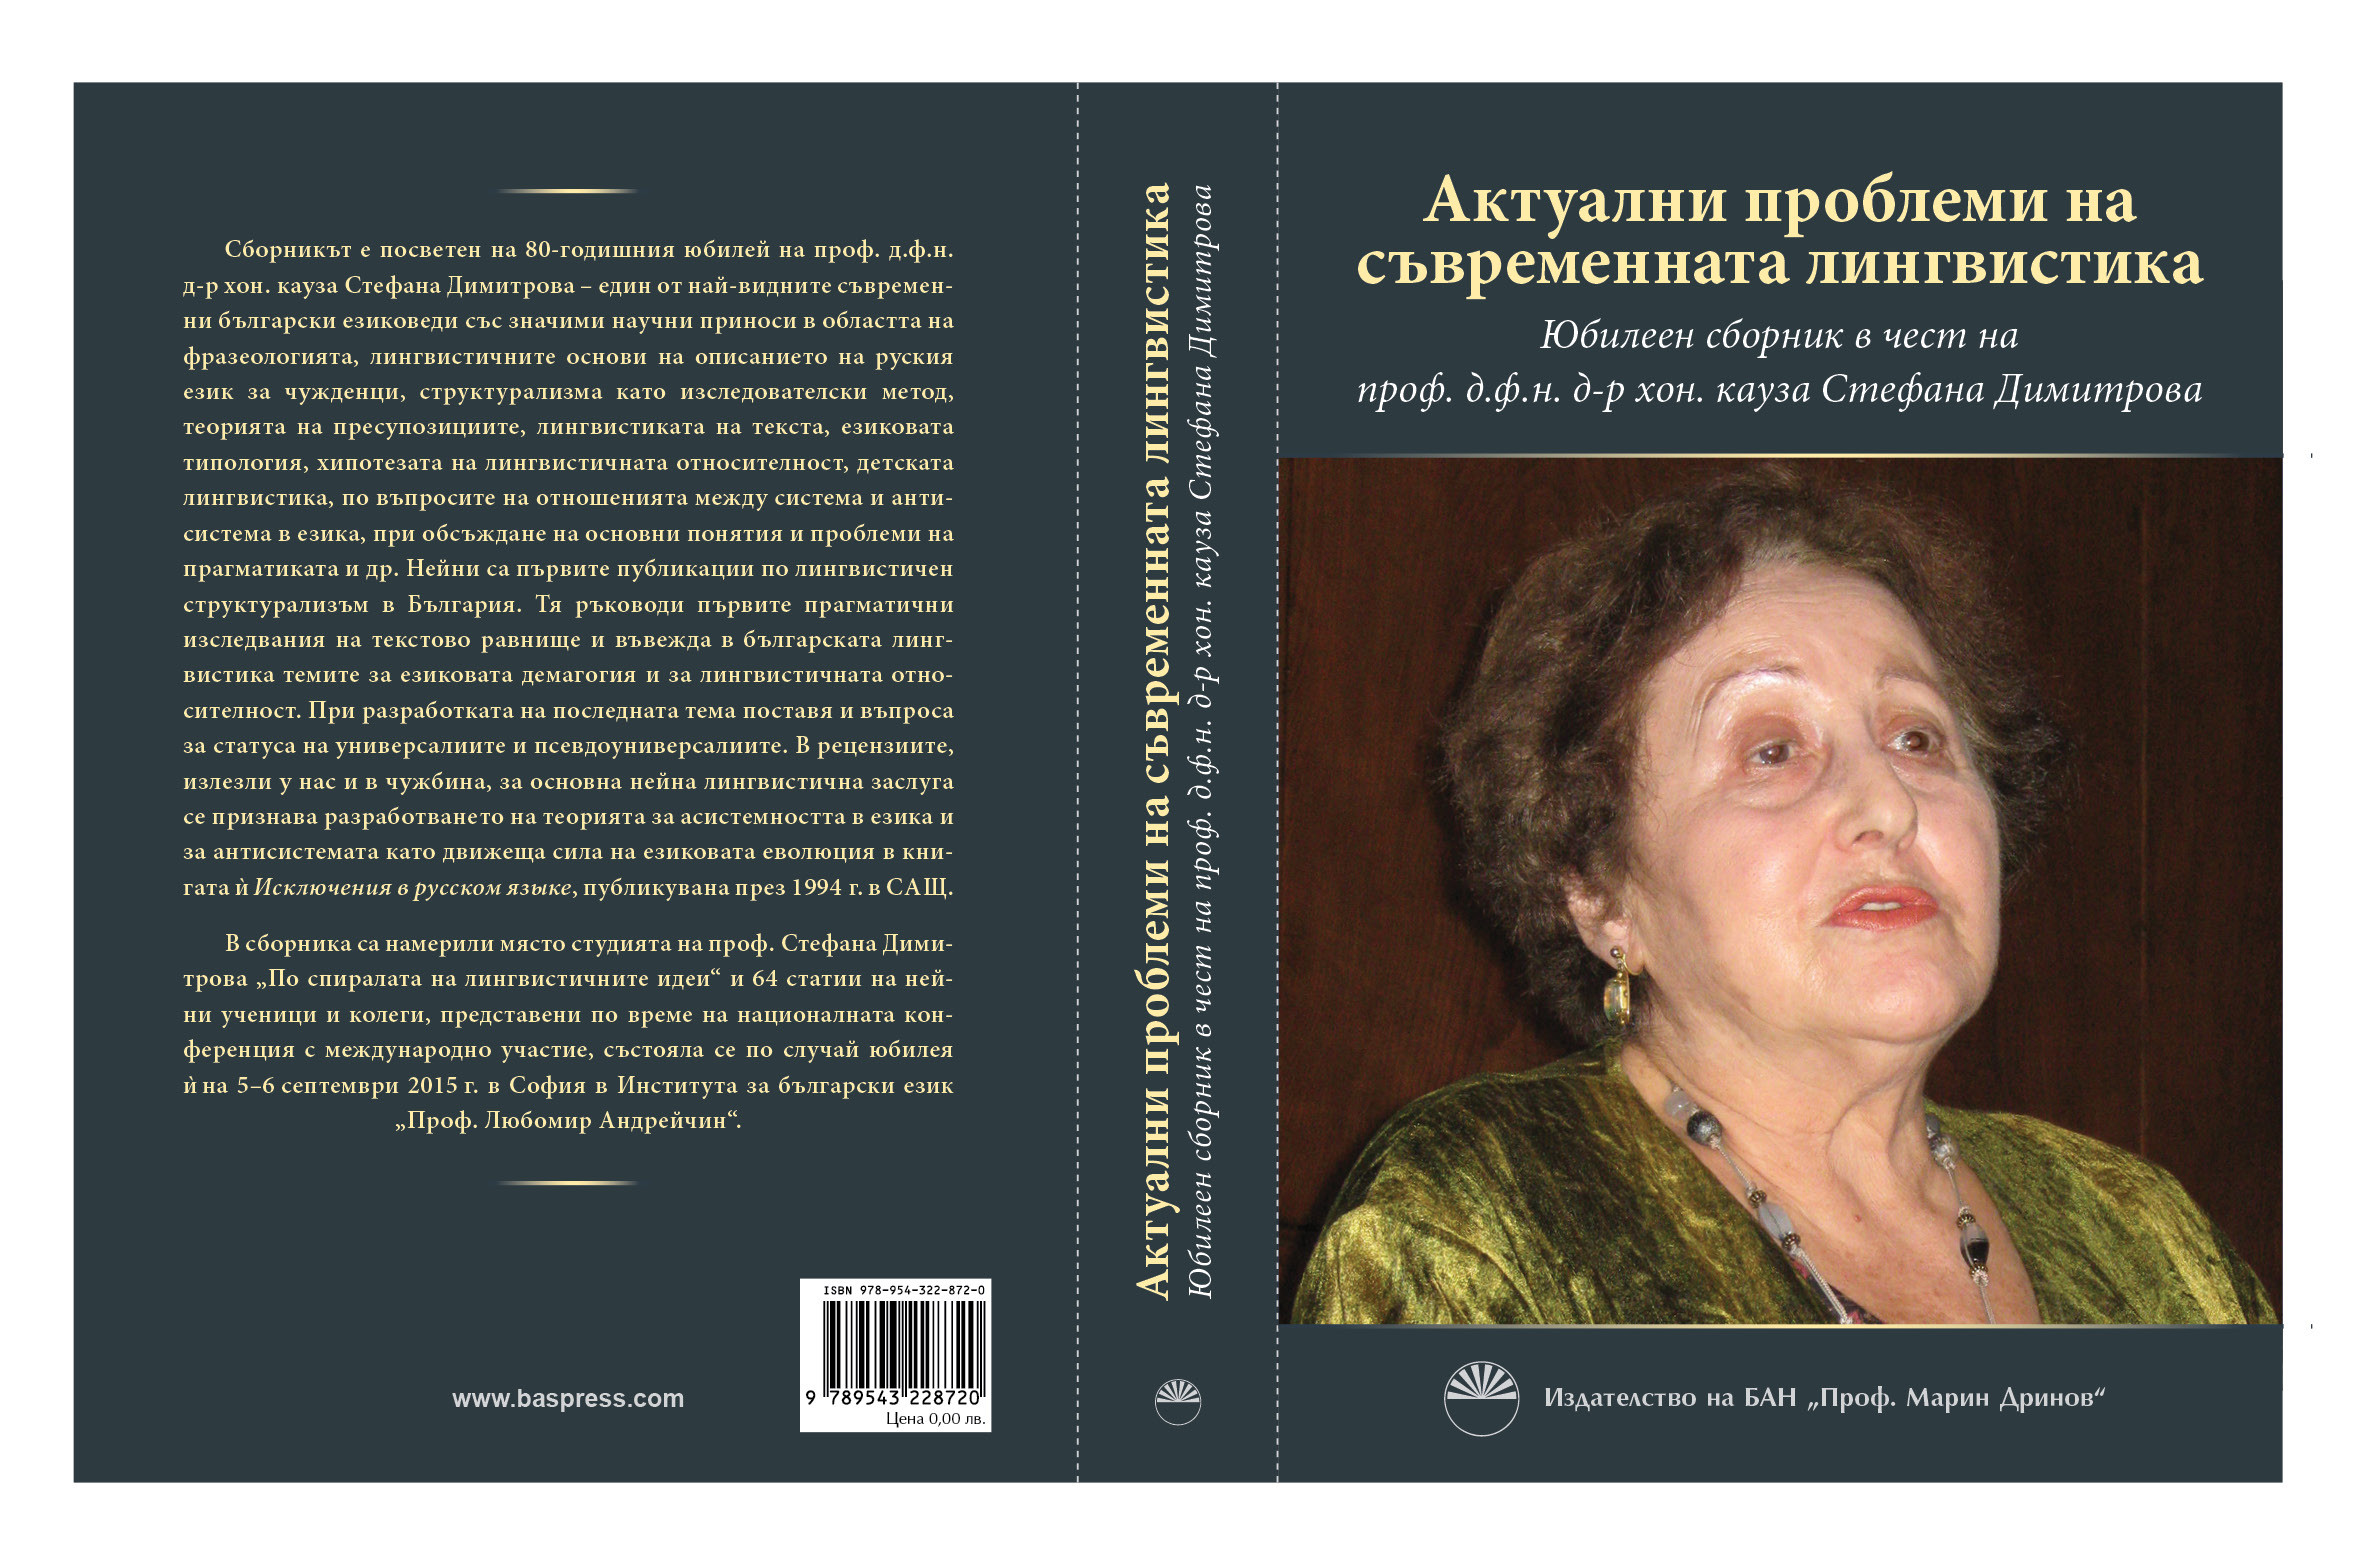 Book Dedicated to the 80th Anniversary of prof. Stefana Dimitrova